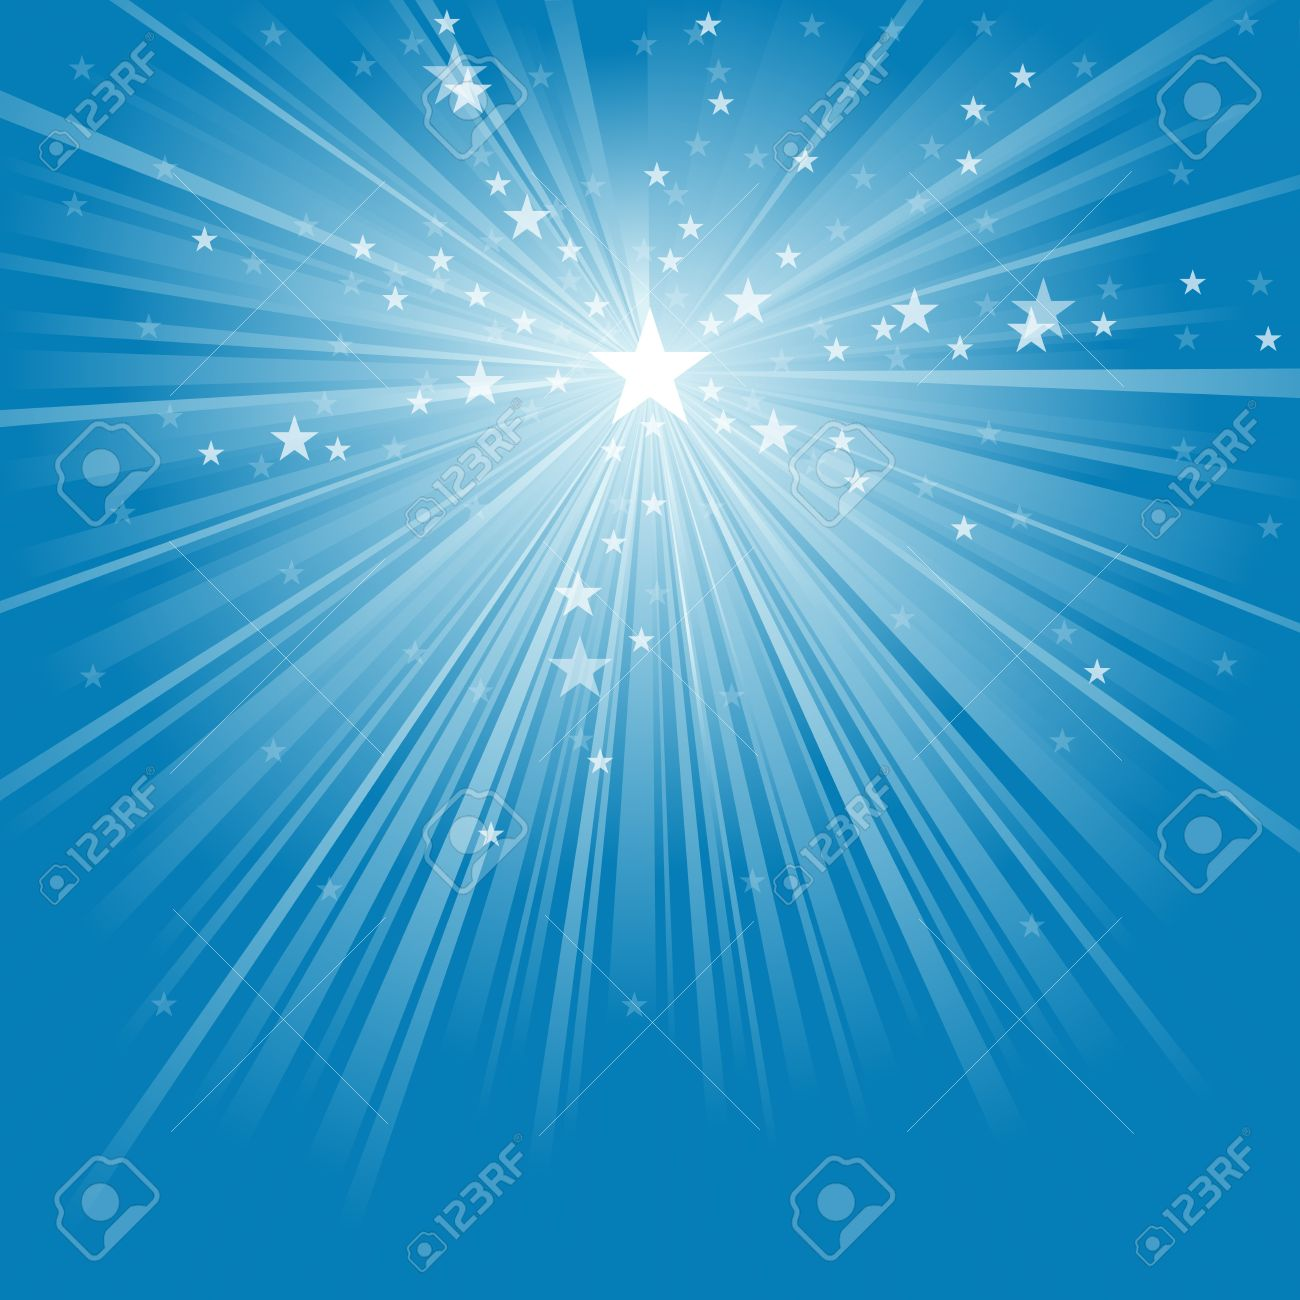 9,820 Radiate Stock Vector Illustration And Royalty Free Radiate.